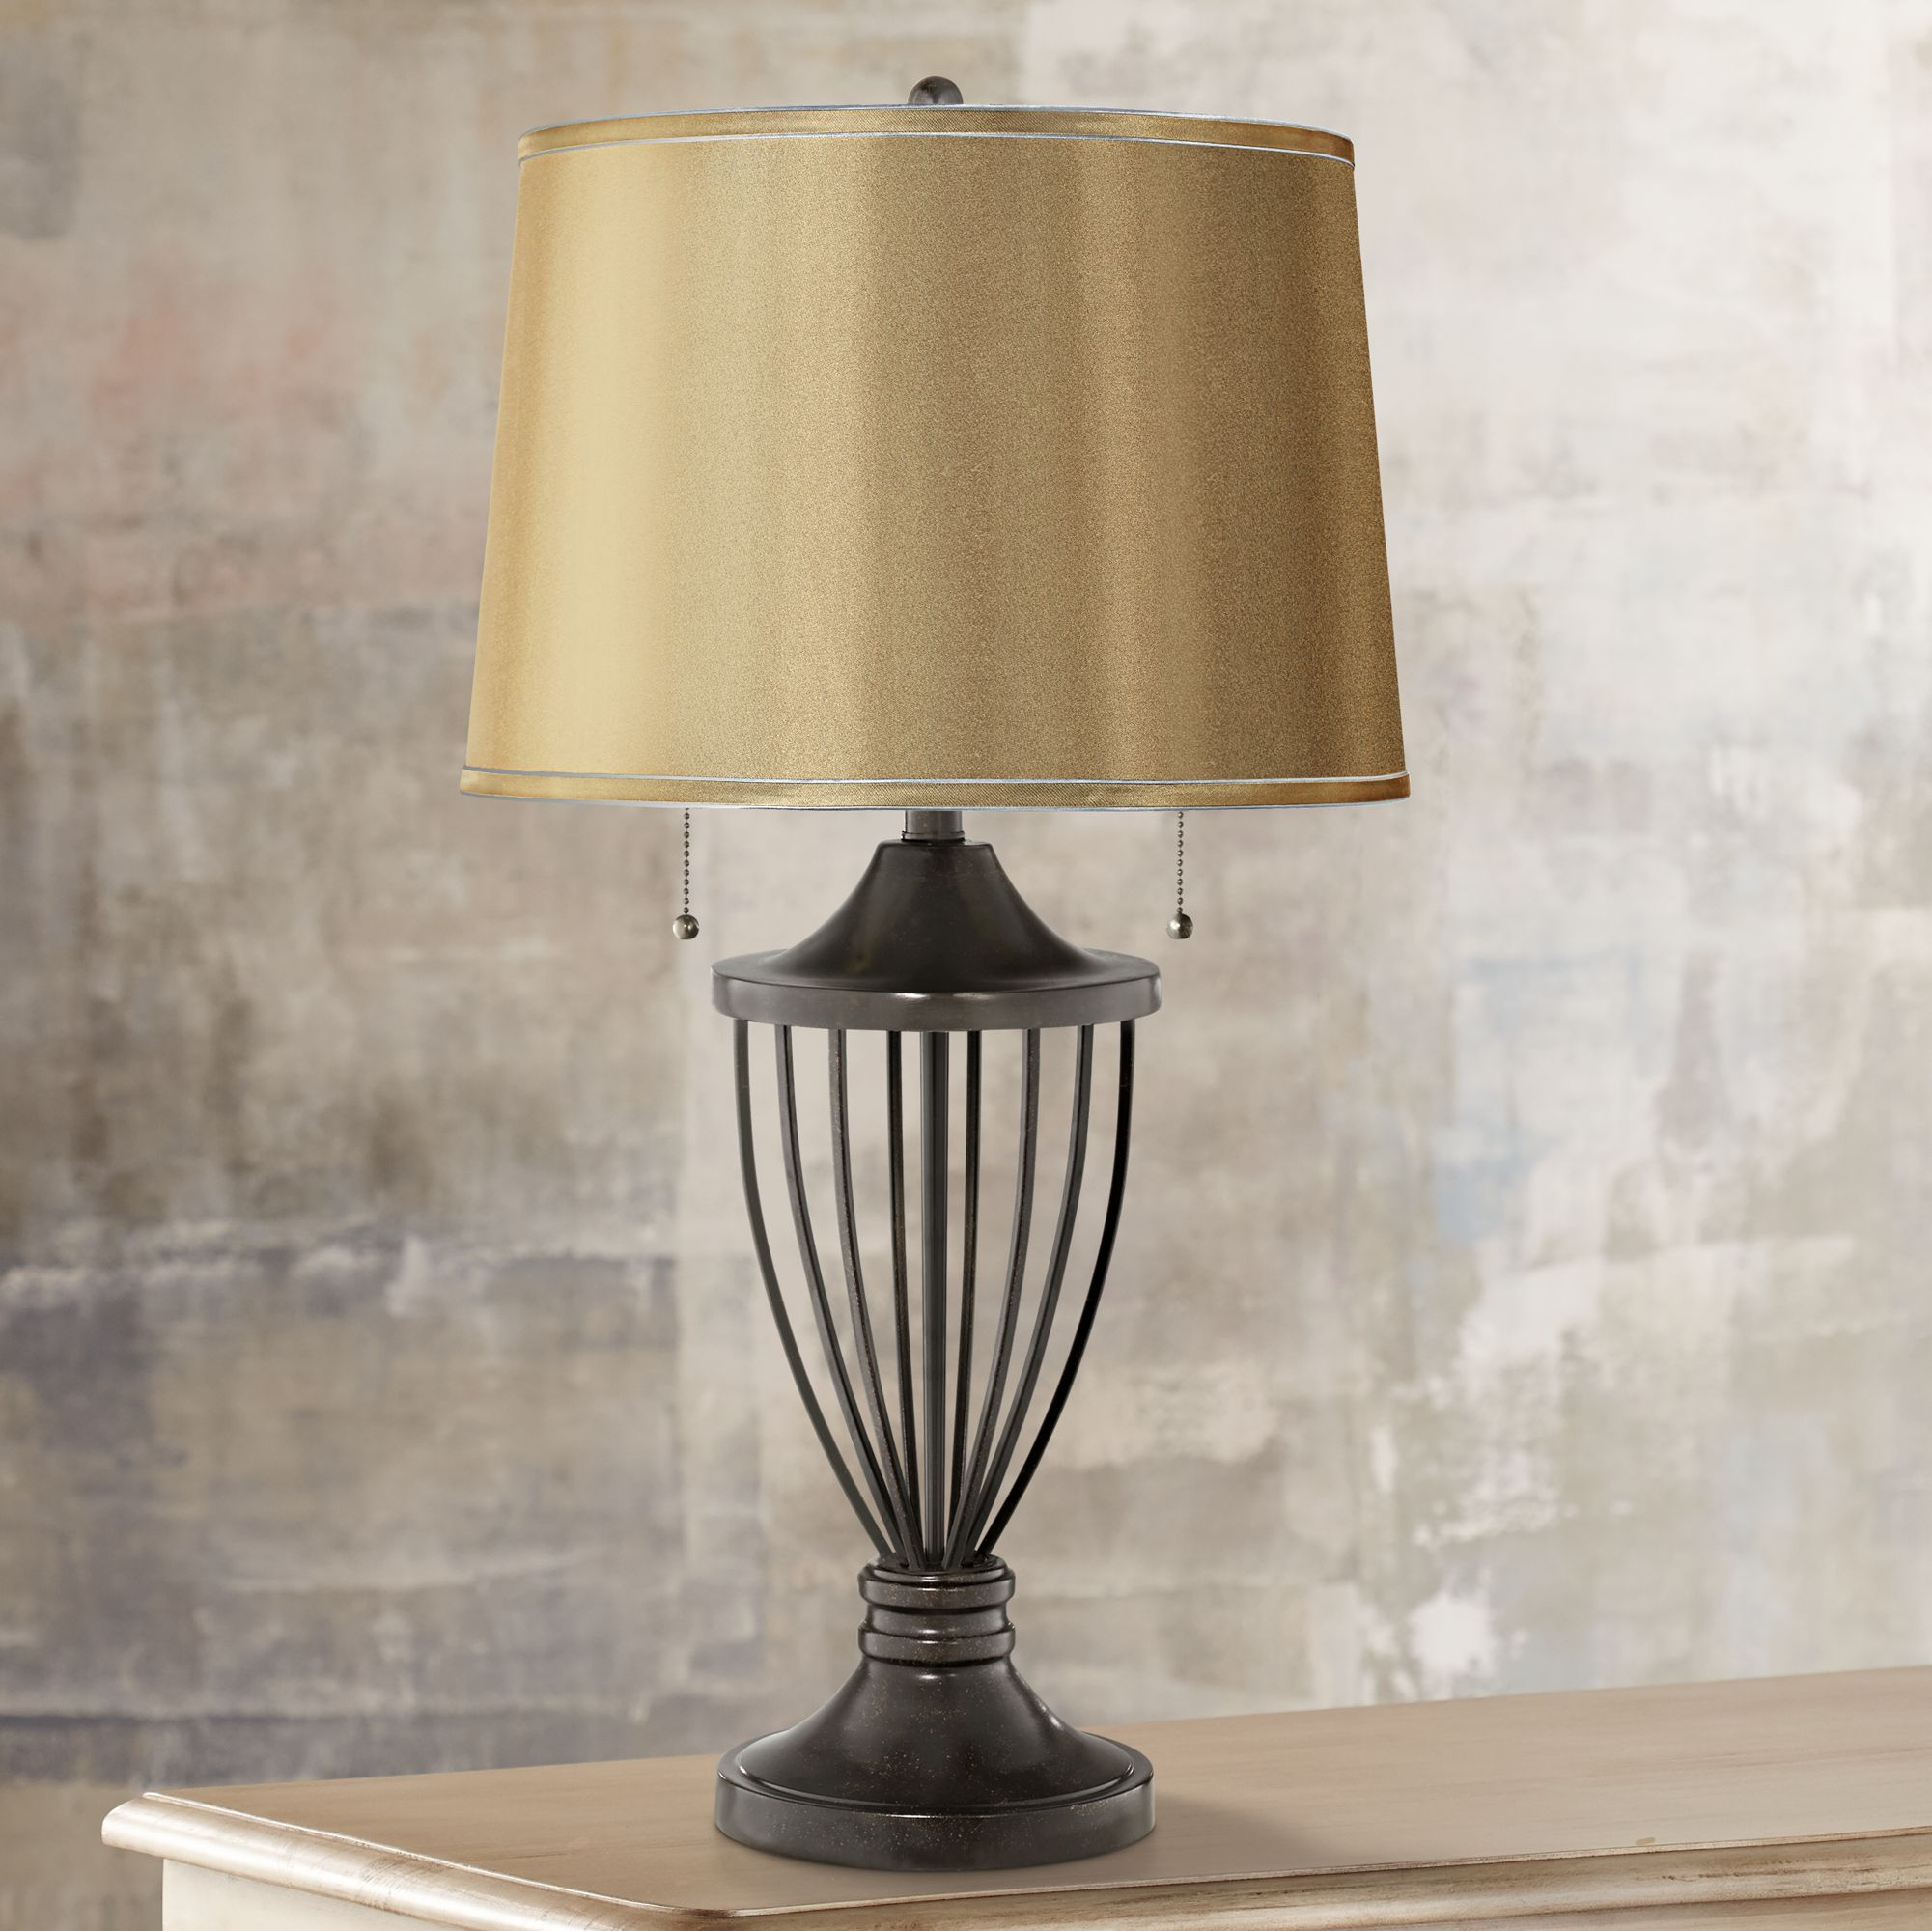 Details About Table Lamp Open Urn Bronze Iron Gold Satin Shade For Living Room Bedroom Bedside